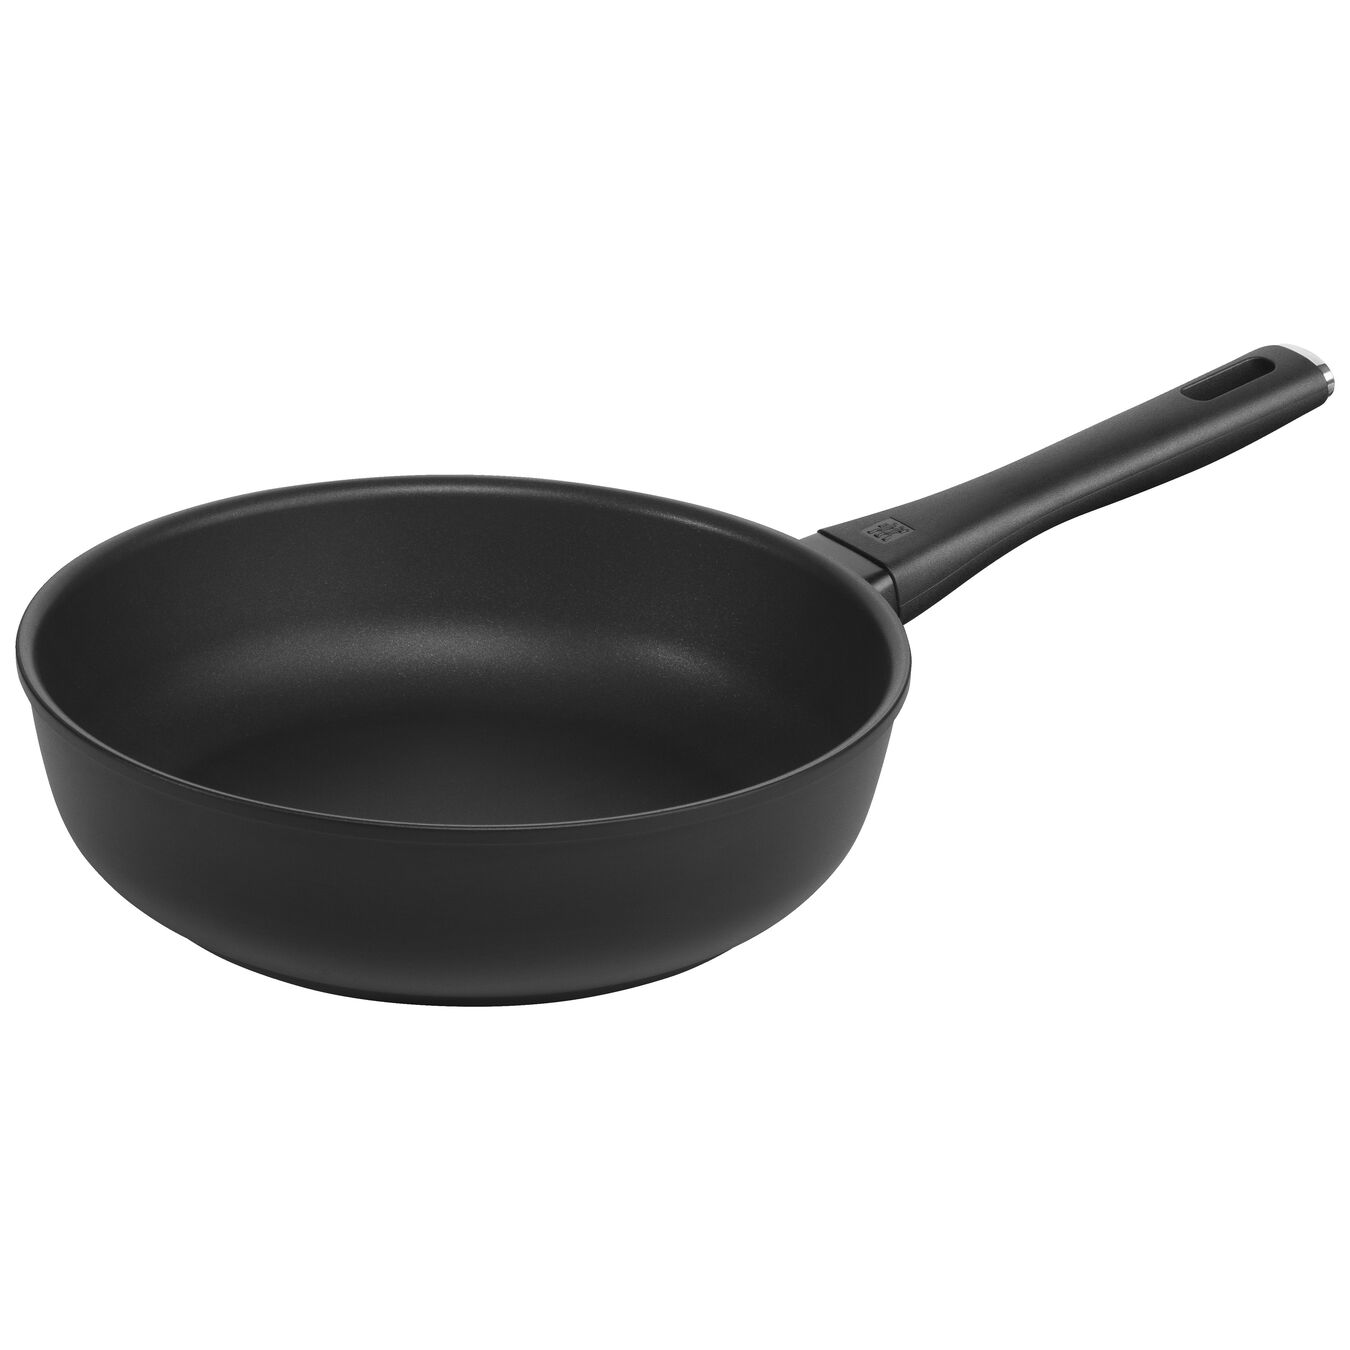 9.5-inch Nonstick Deep Fry Pan,,large 1